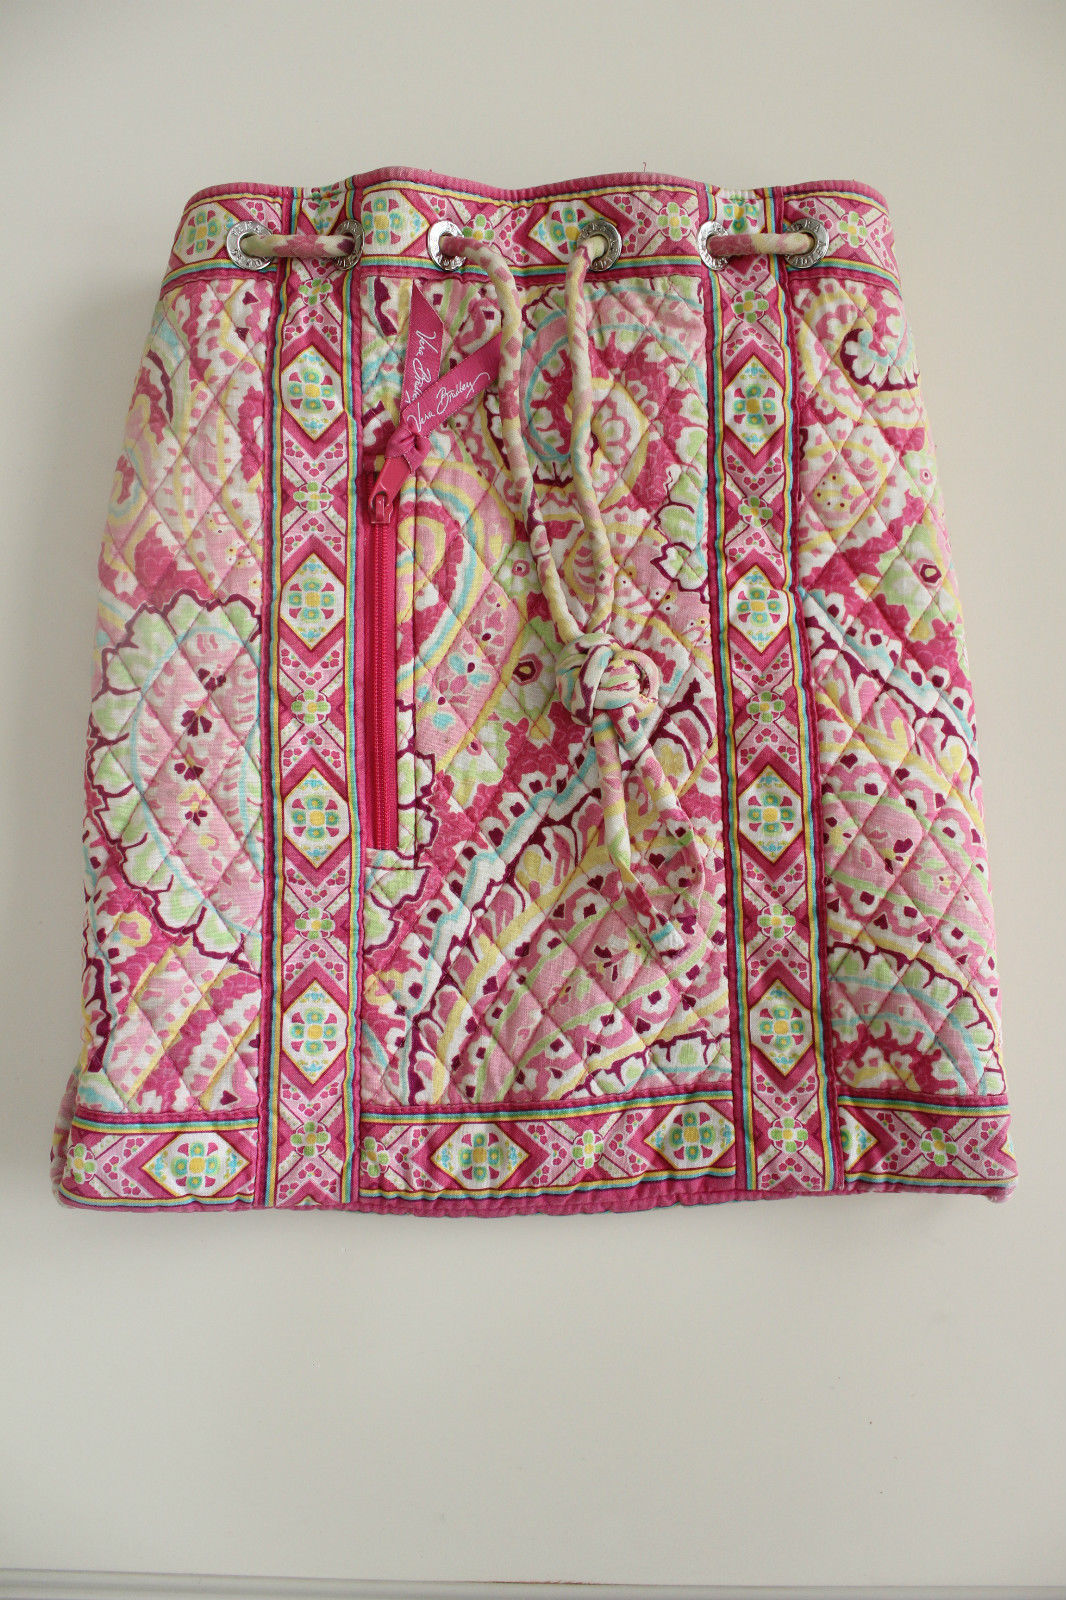 d8c0cf110751 S l1600. S l1600. Previous. Vera Bradley drawstring backpack purse in  retired Capri Melon pattern